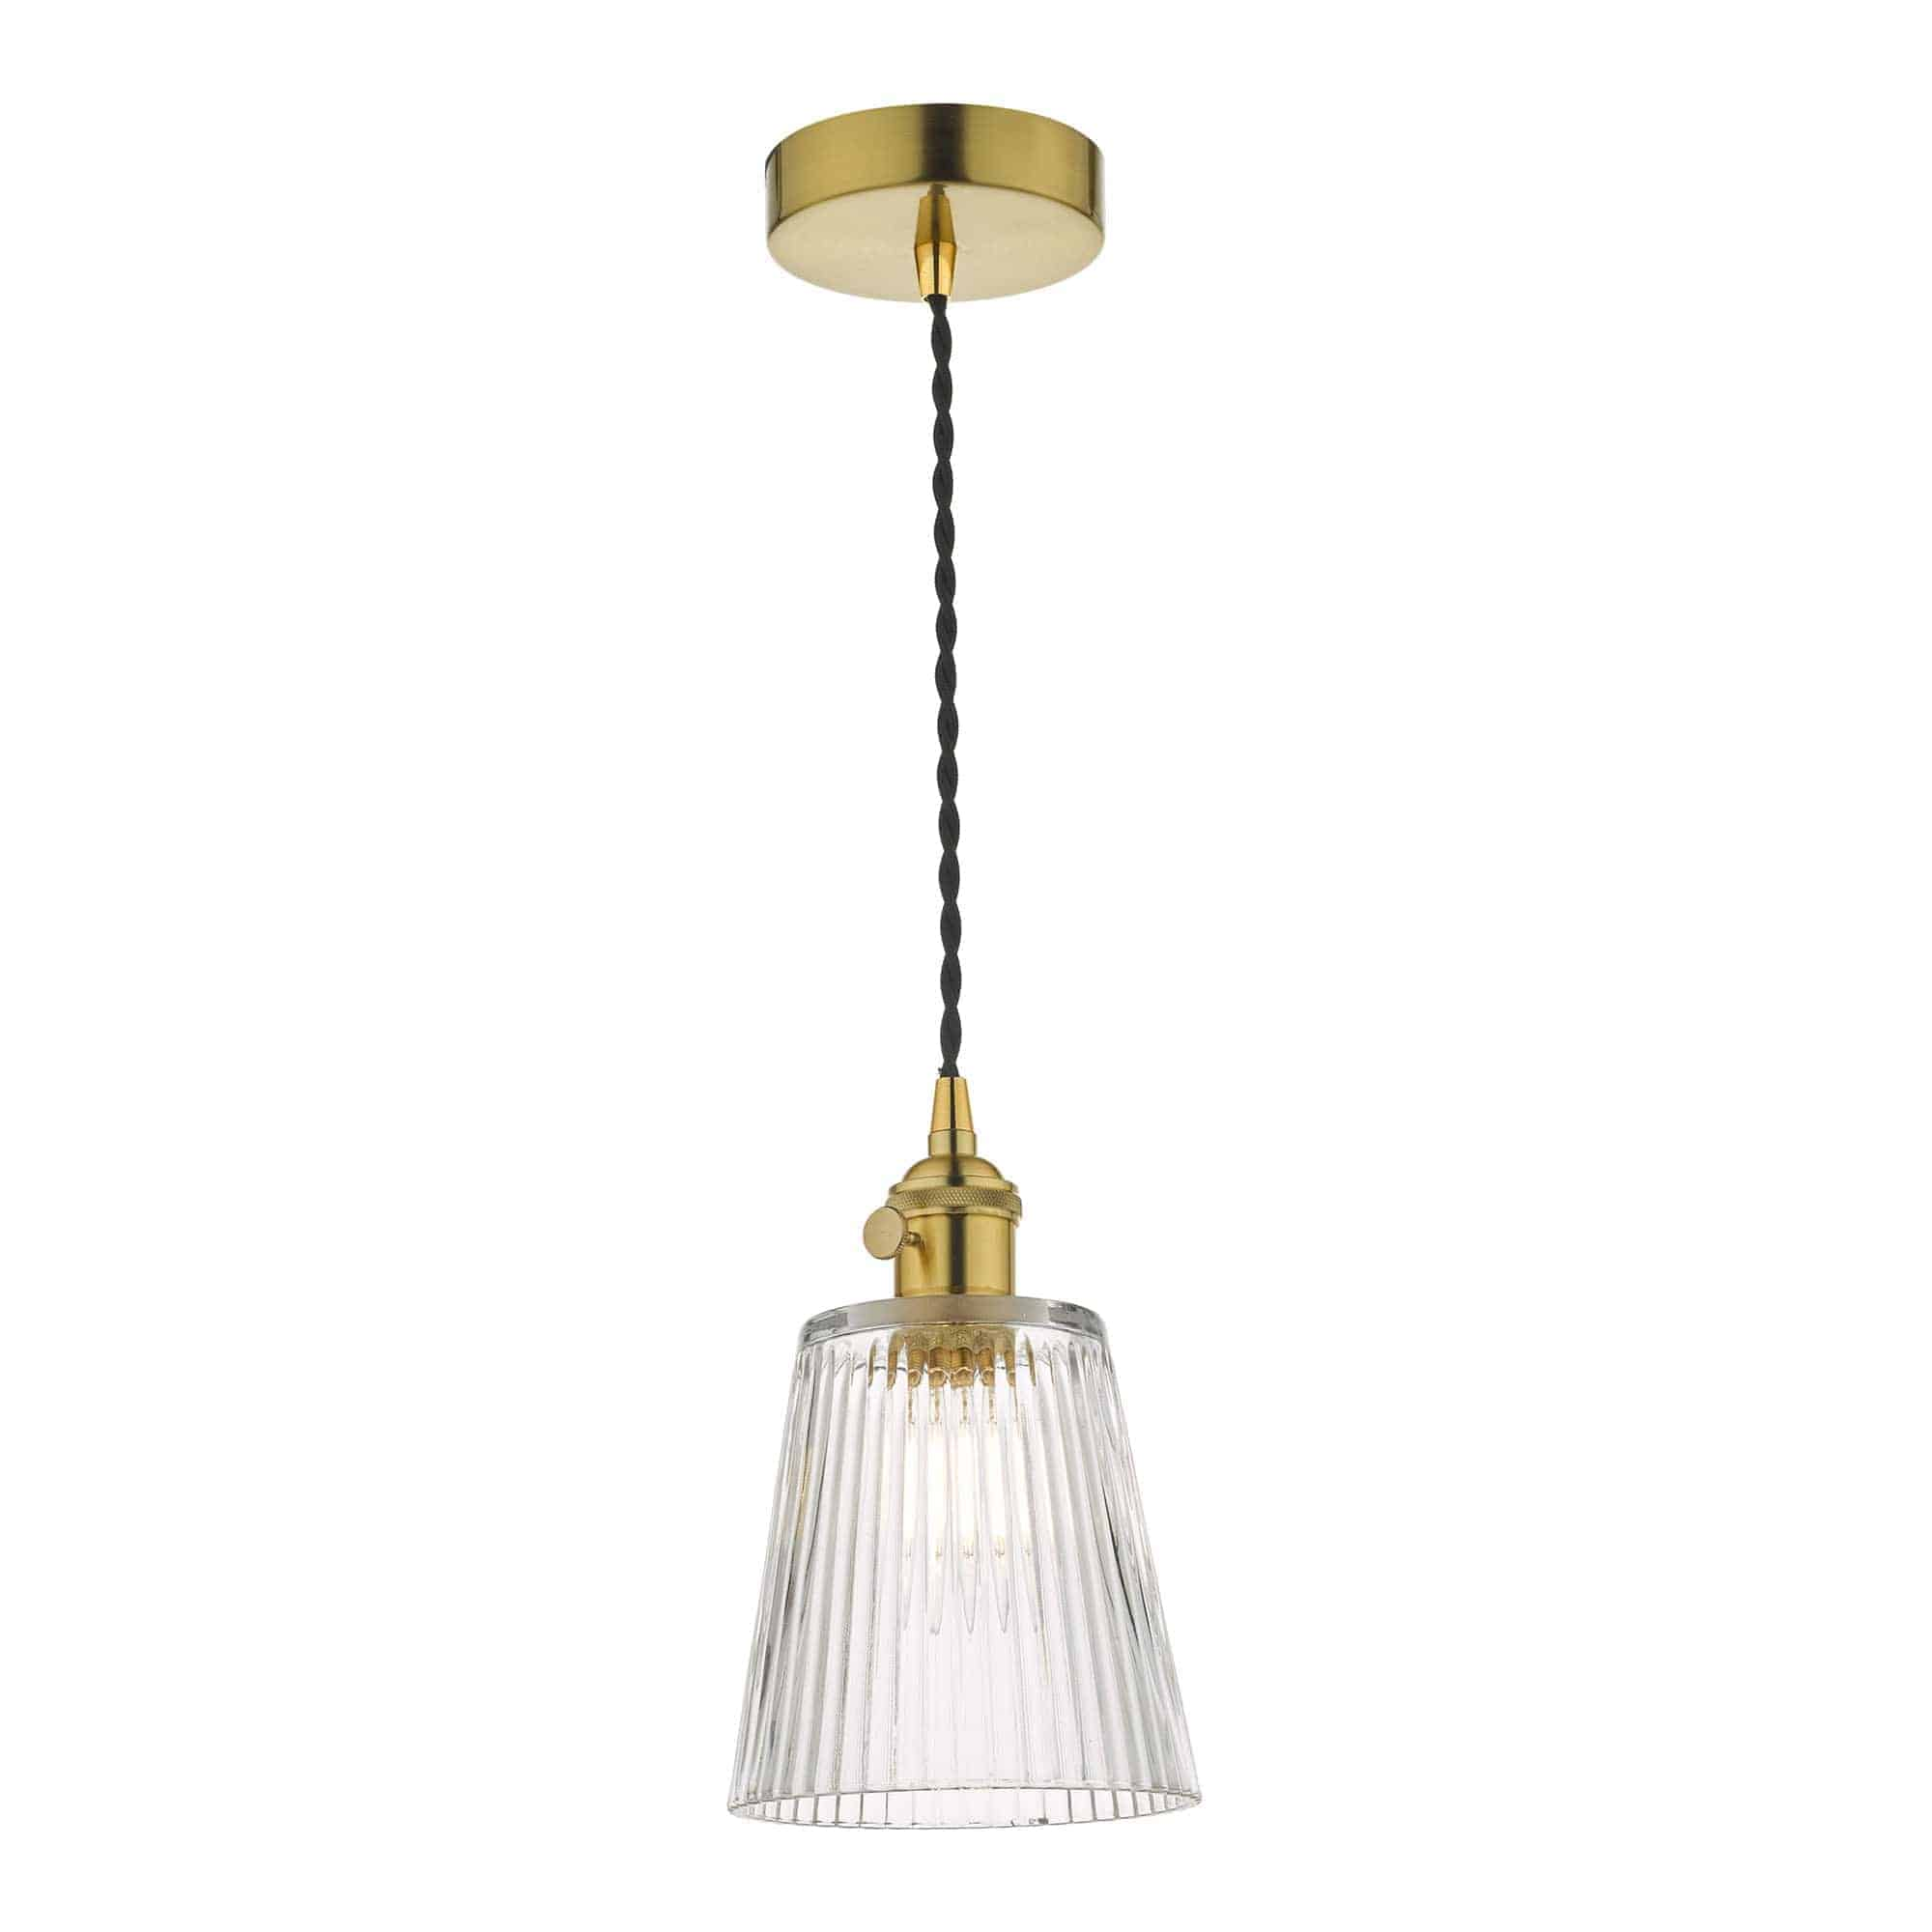 Dar HAD0140-05 Hadano 1 Light Pendant Natural Brass With Ribbed Glass Shade